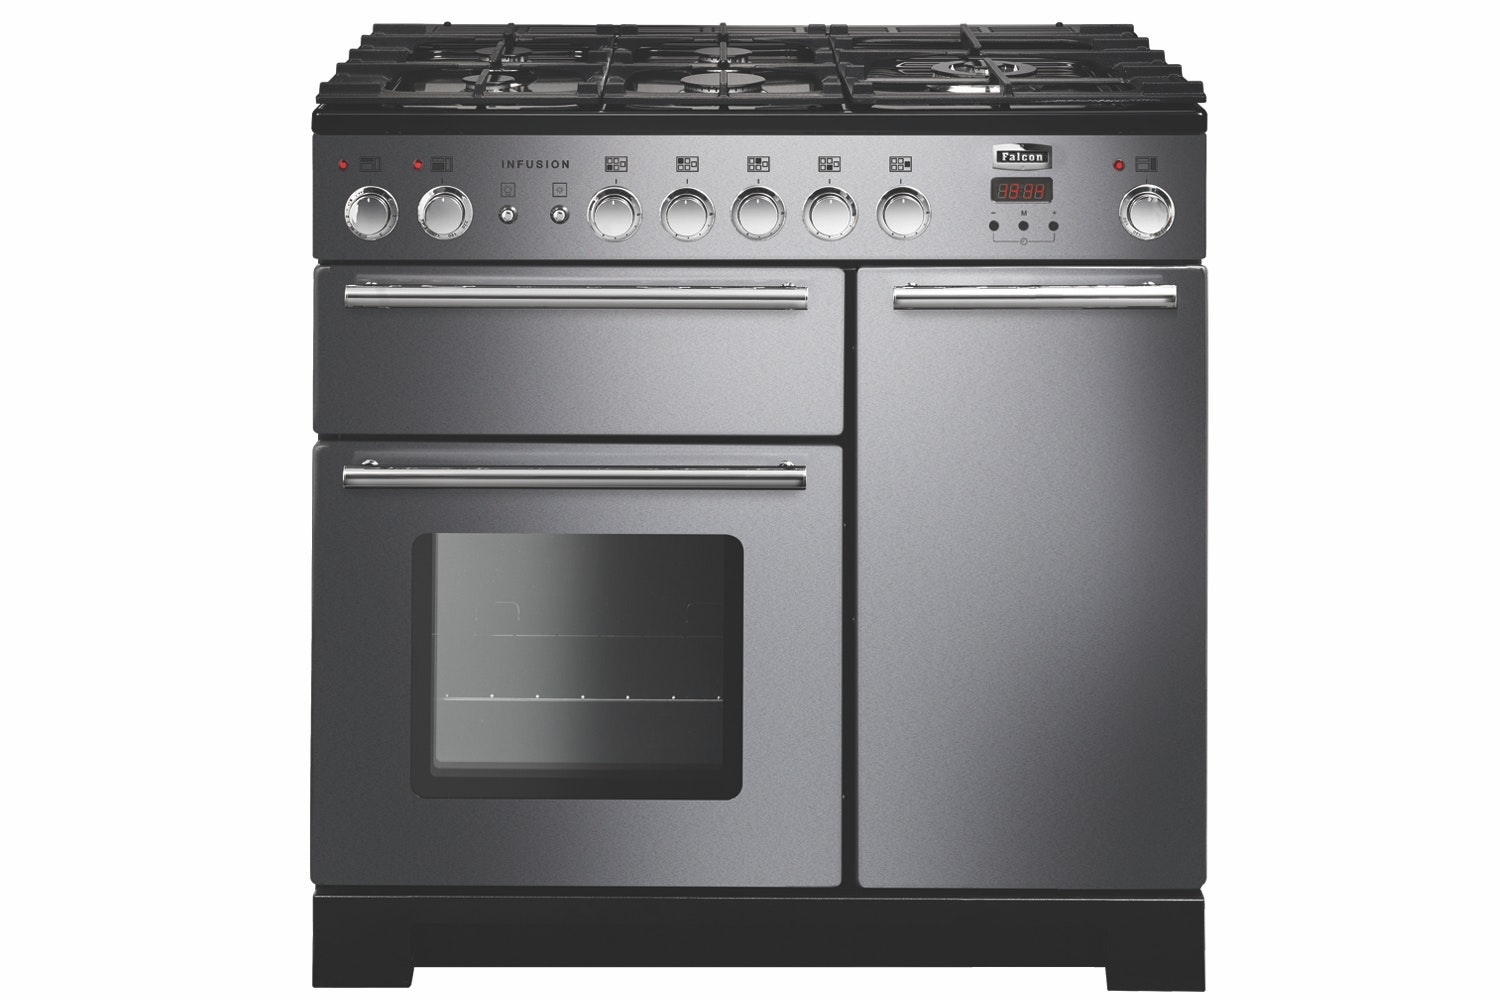 Rangemaster Infusion 90cm Dual Fuel Range Cooker | INF90DFFSS | Stainless Steel